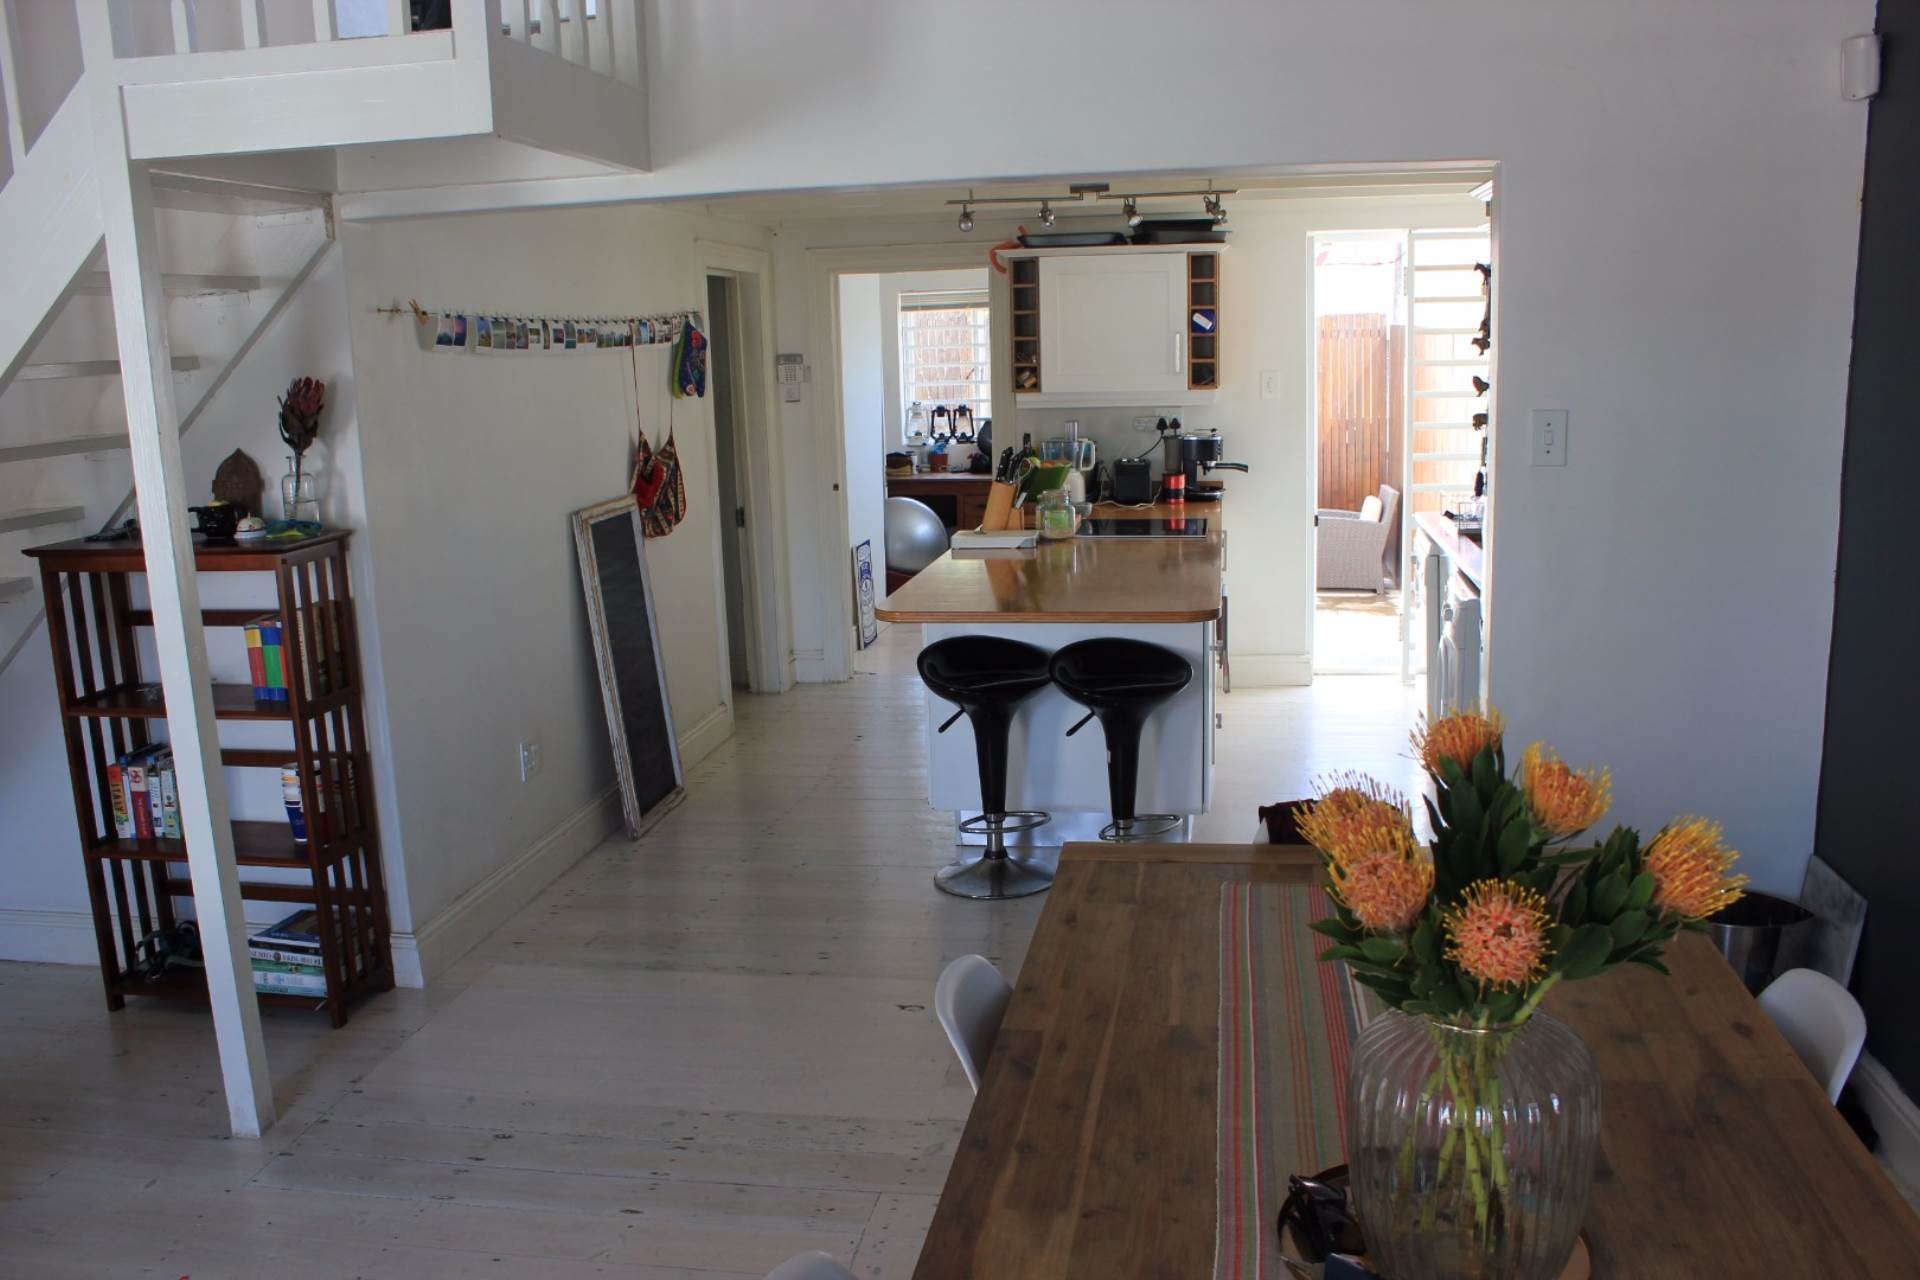 House Pending Sale In Sea Point Cape Town Western For R 6250000